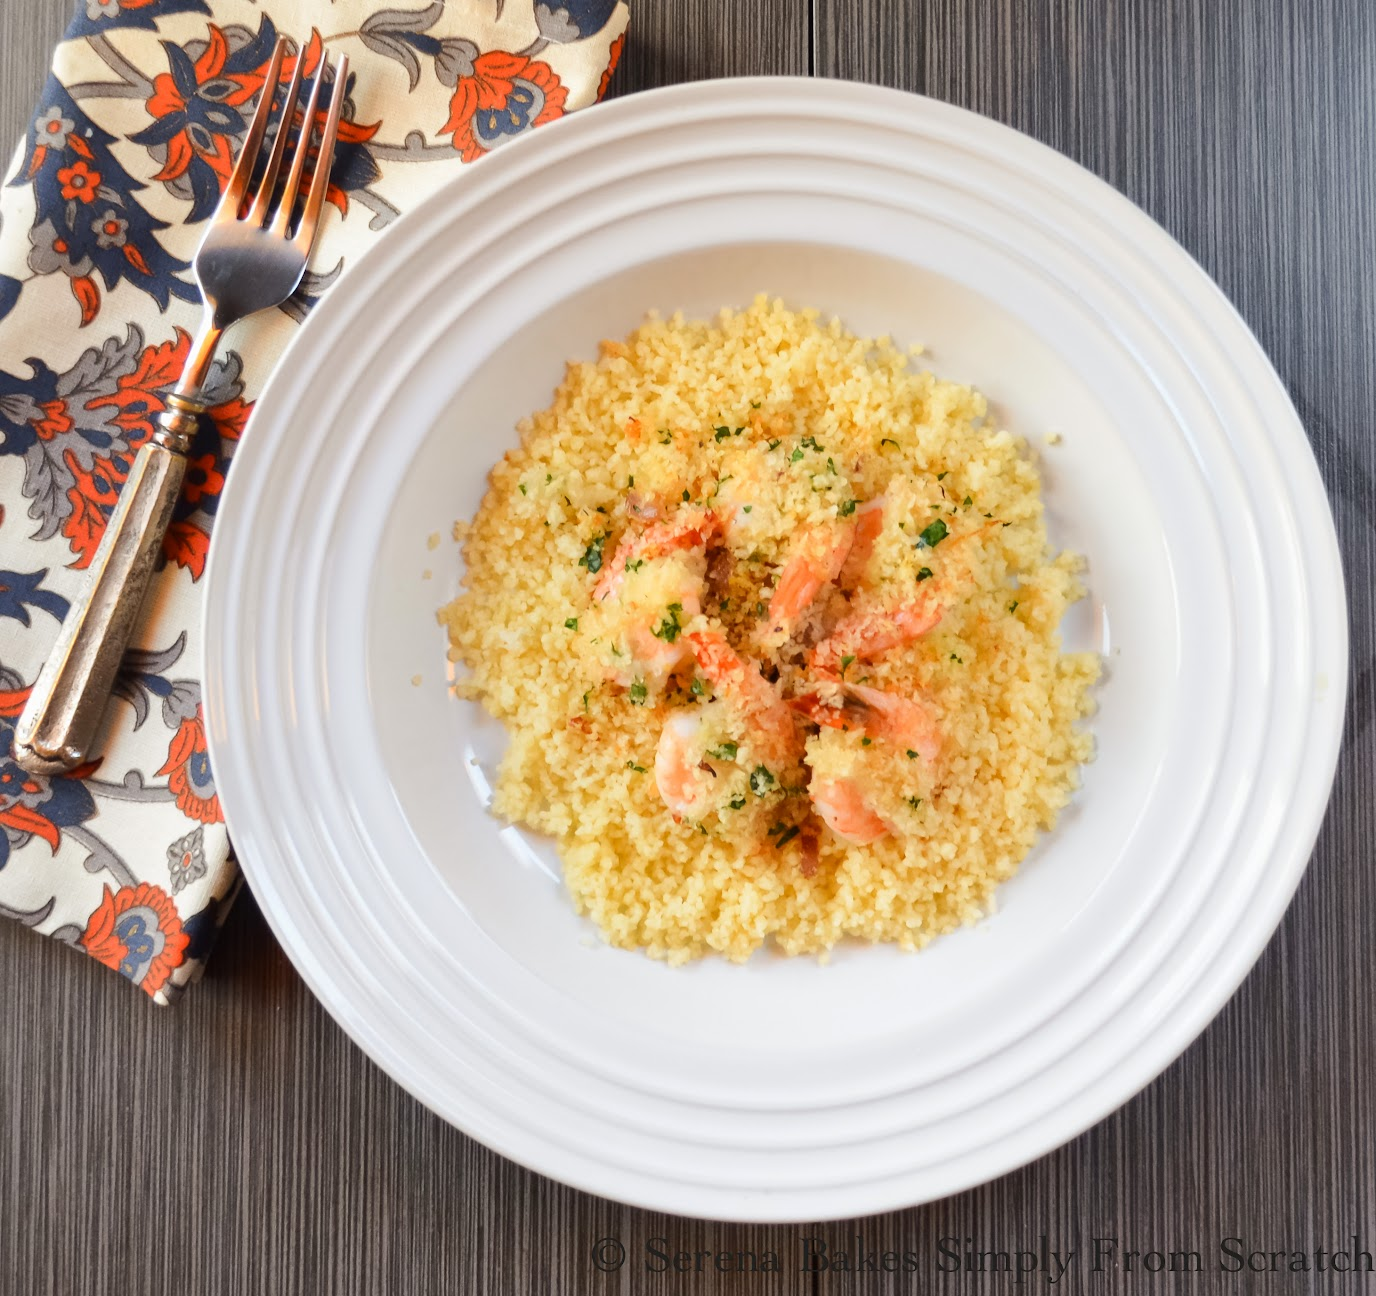 Quick Herbed Panko Baked Shrimp With Couscous | Serena ...